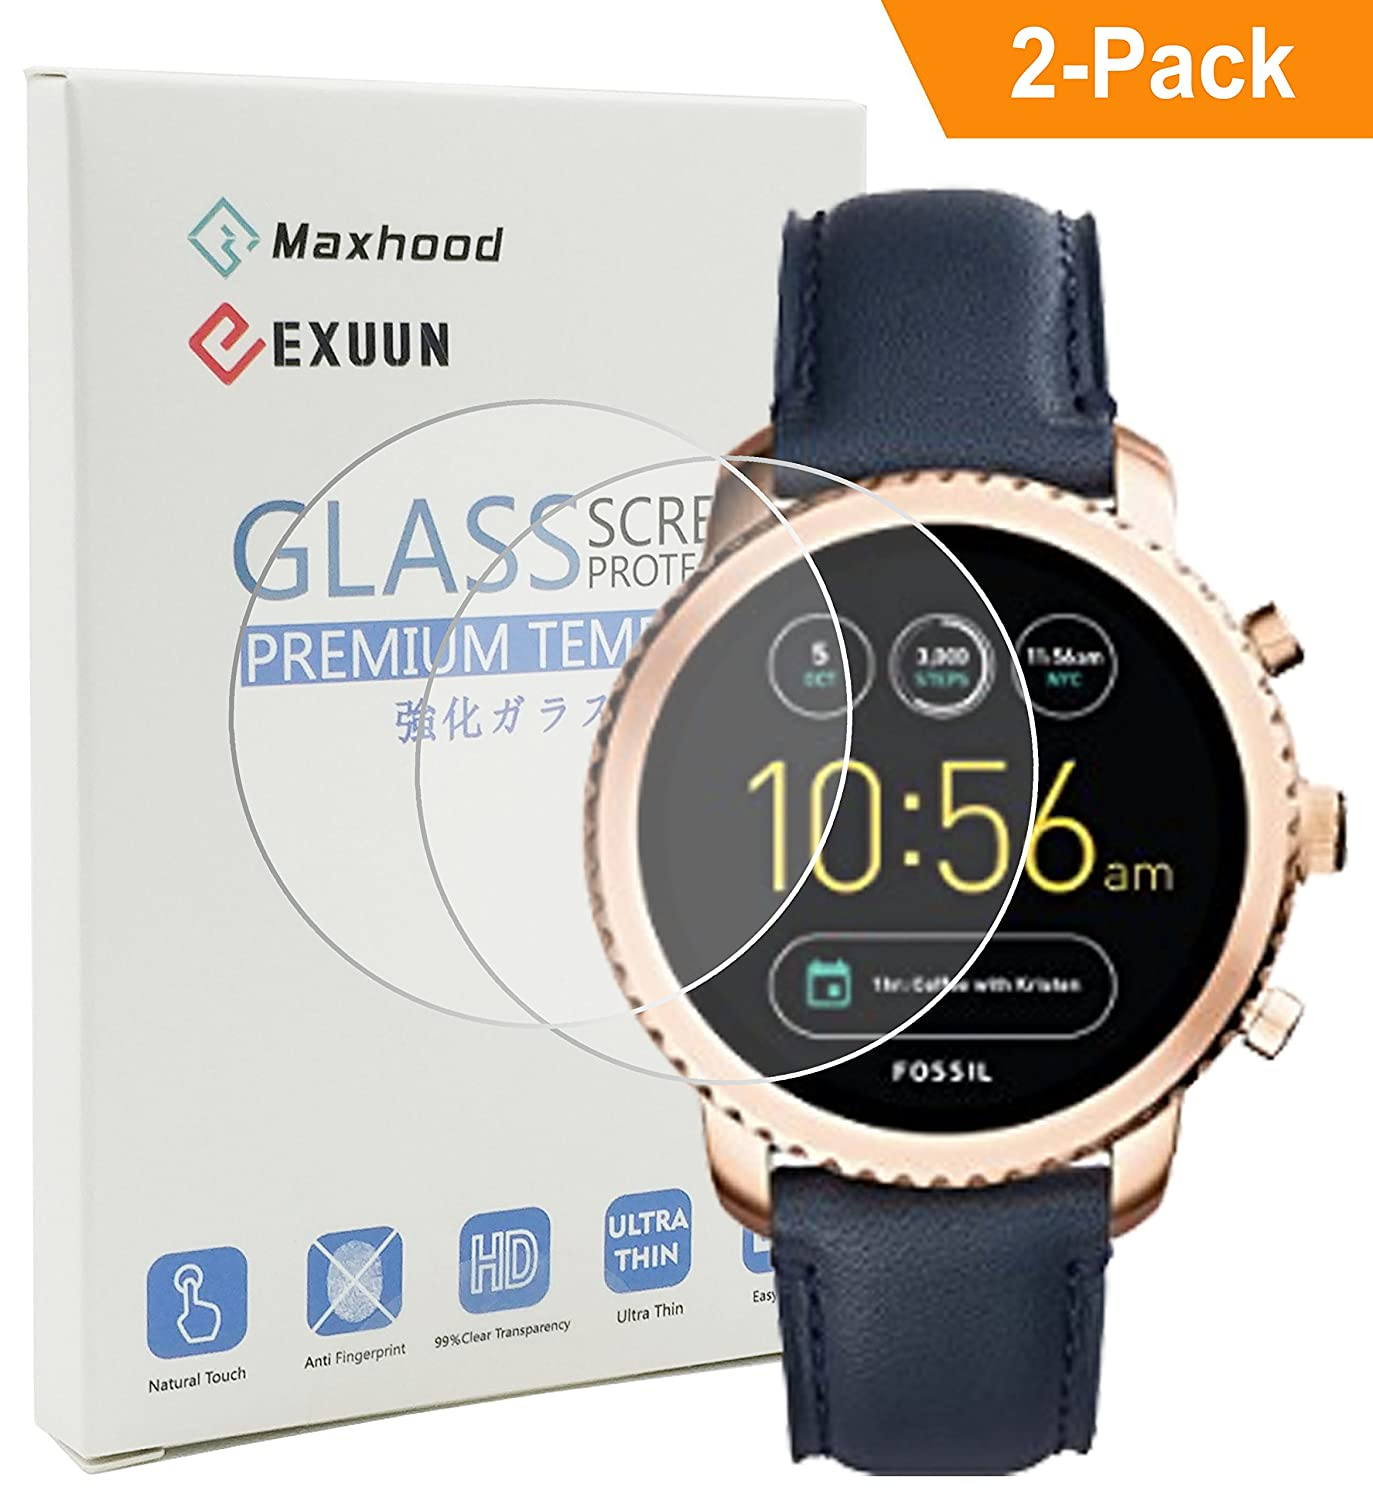 Exuun (2-Pack) Fossil Q Explorist Tempered Glass Screen Protector, 9H Tempered Glass 2.5D Round Edge Anti-Fingerprint Screen Protector for Fossil Q Explorist EXU-000120